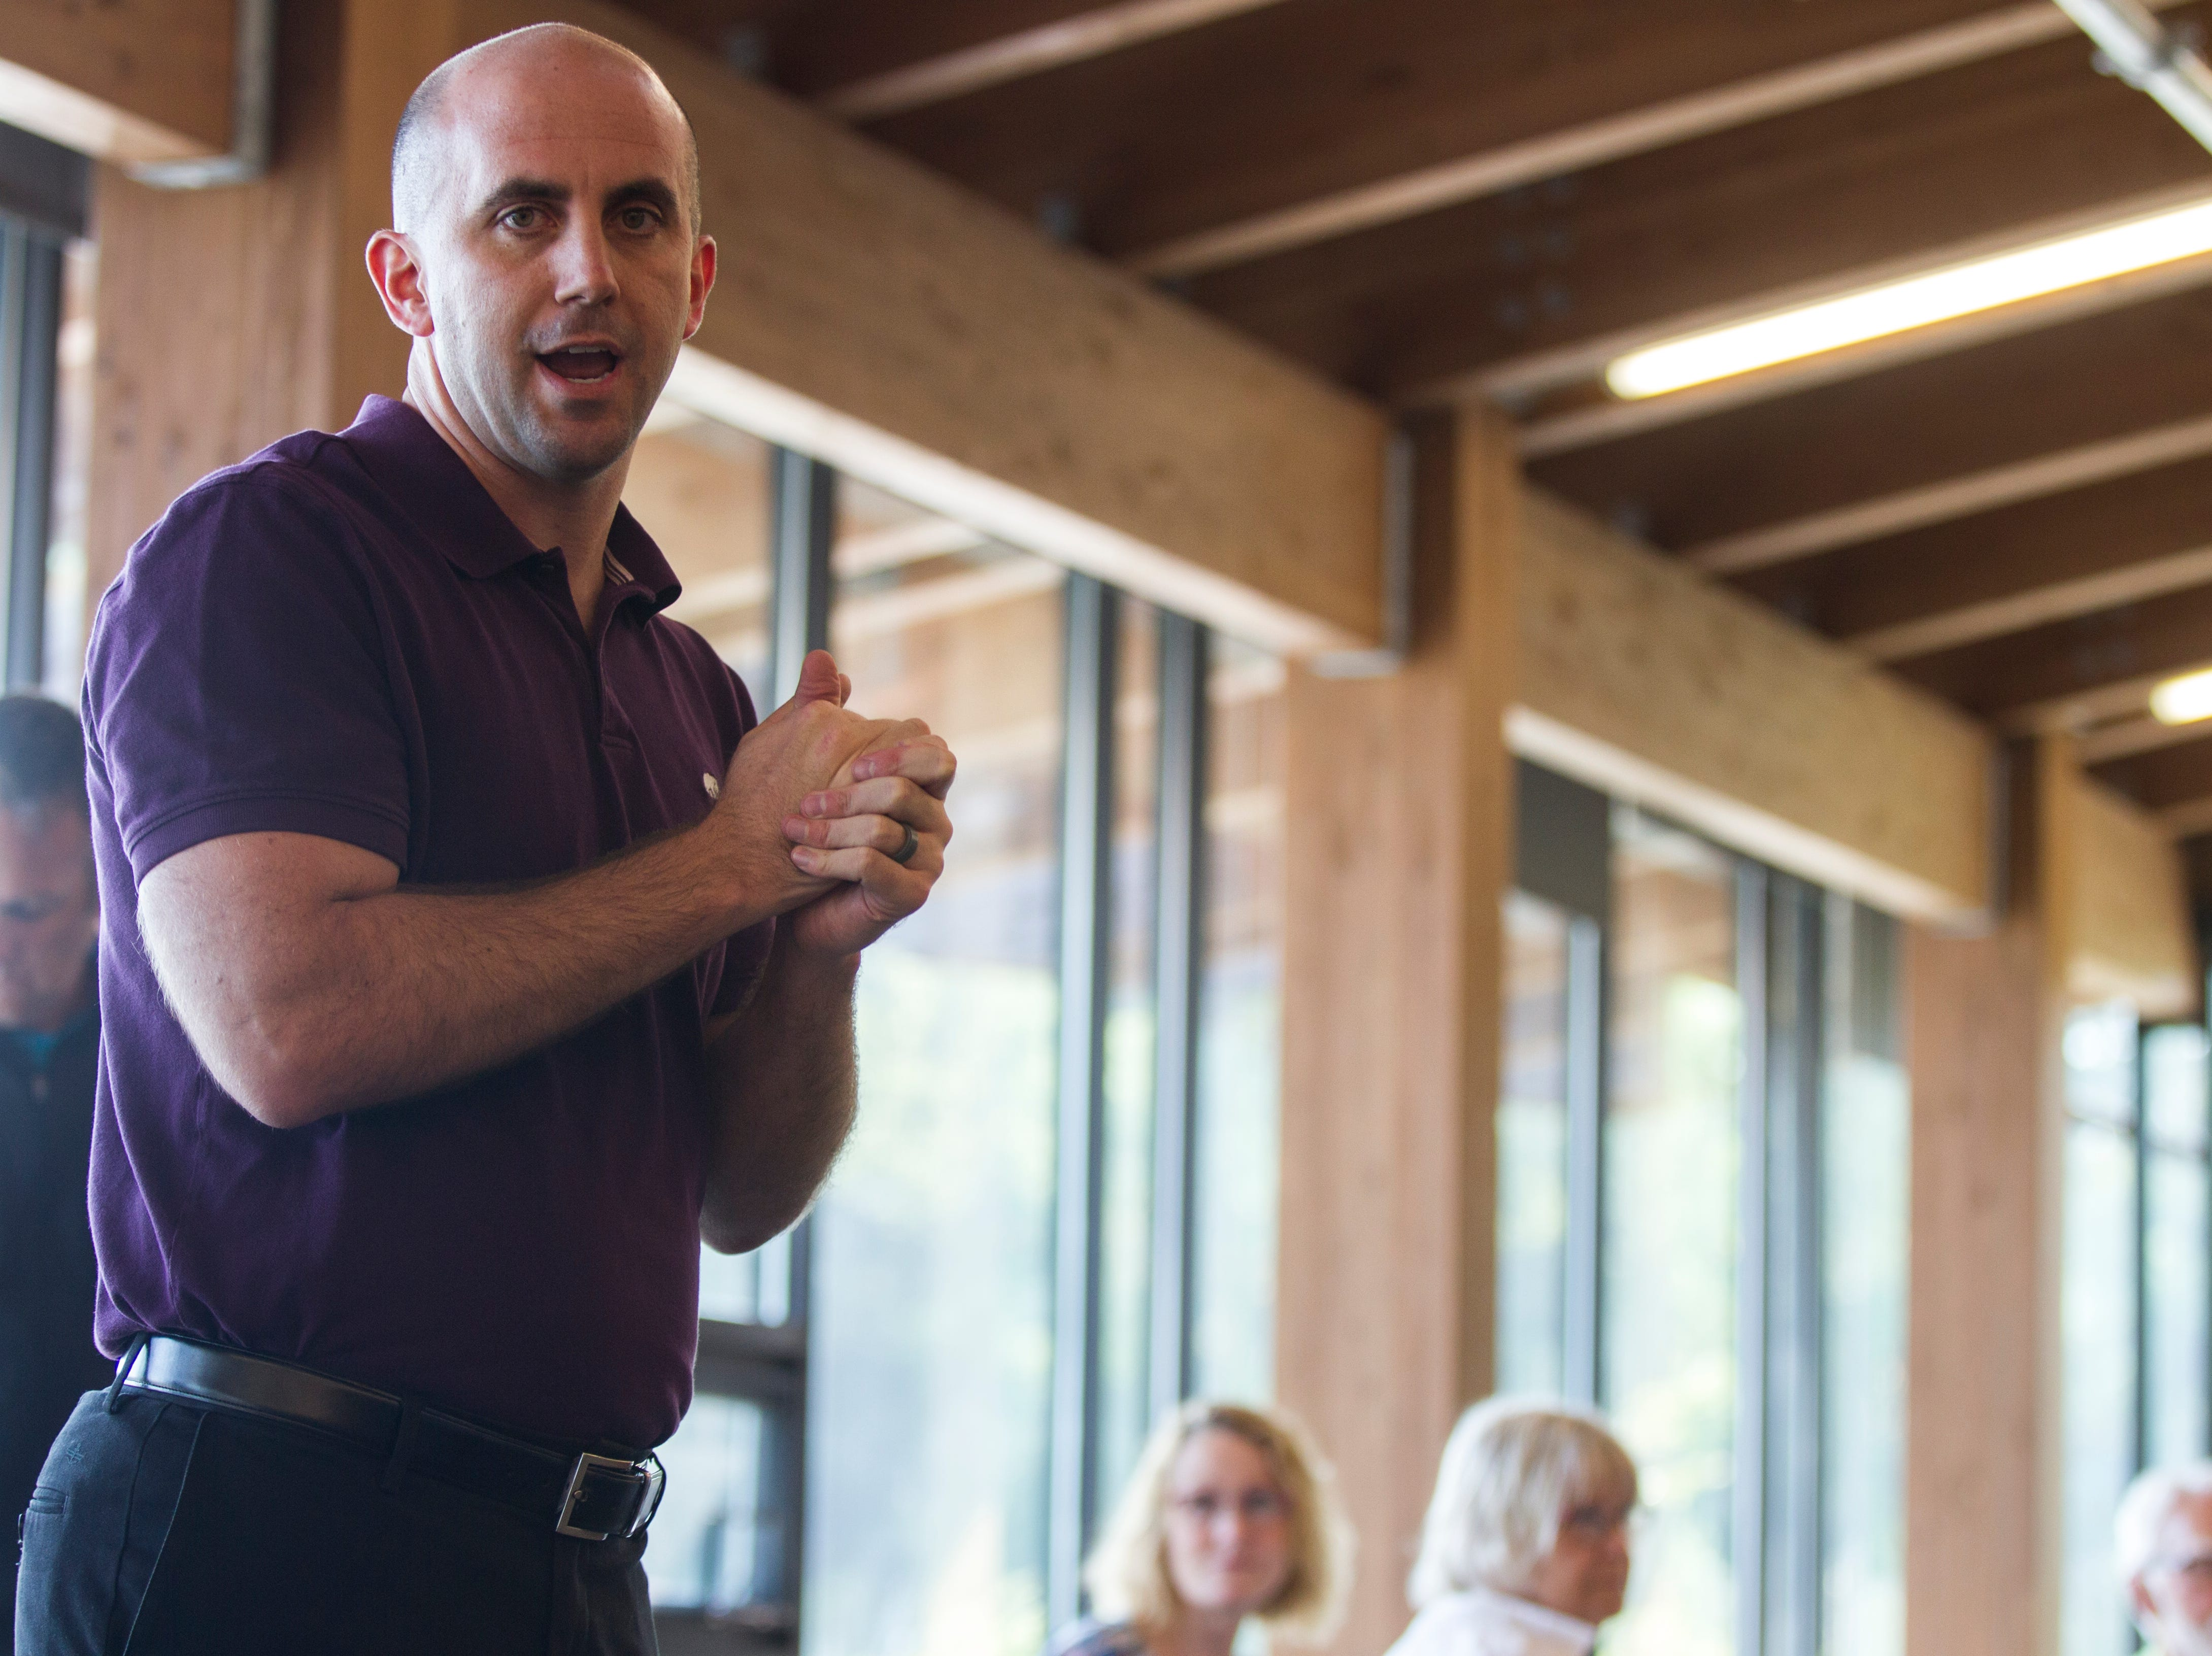 Geoff Fruin, Iowa City city manager, speaks during an event for Iowa City RAGBRAI volunteers on Monday, Aug. 27, 2018, inside the Park Lodge at Terry Trueblood Recreation Area in Iowa City.